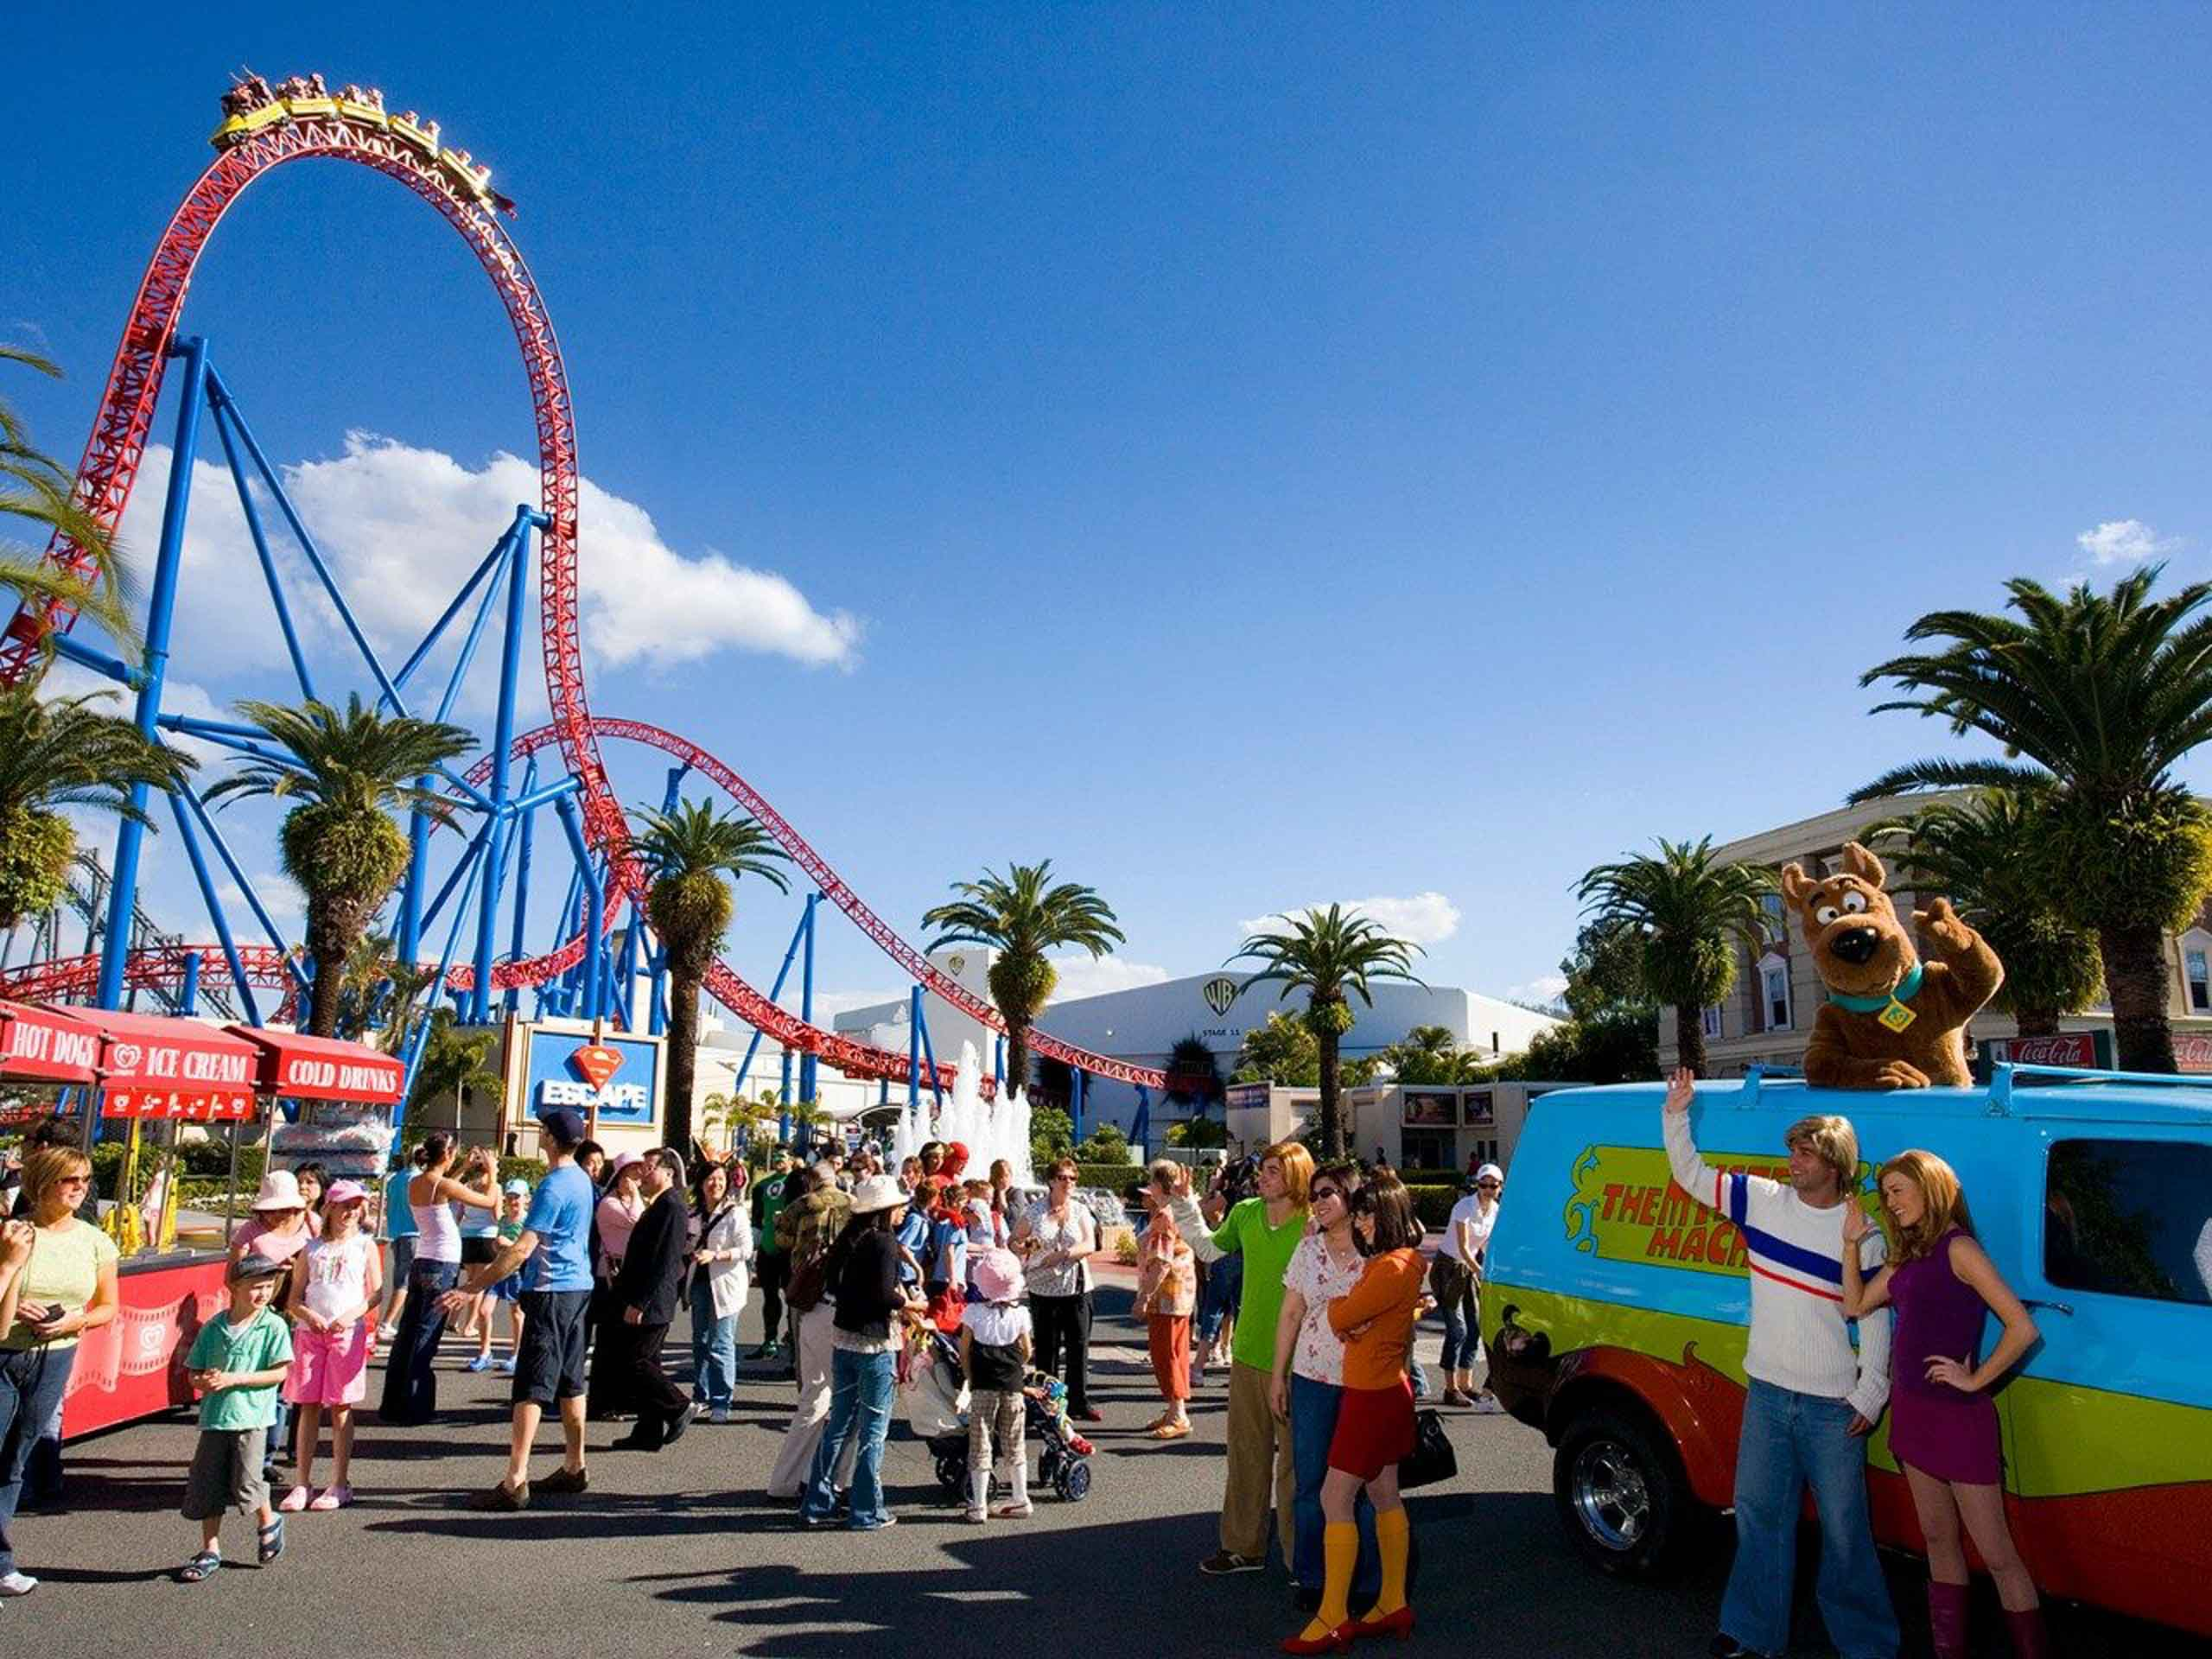 surf-regency-attractions-surfers-paradise-movie-world